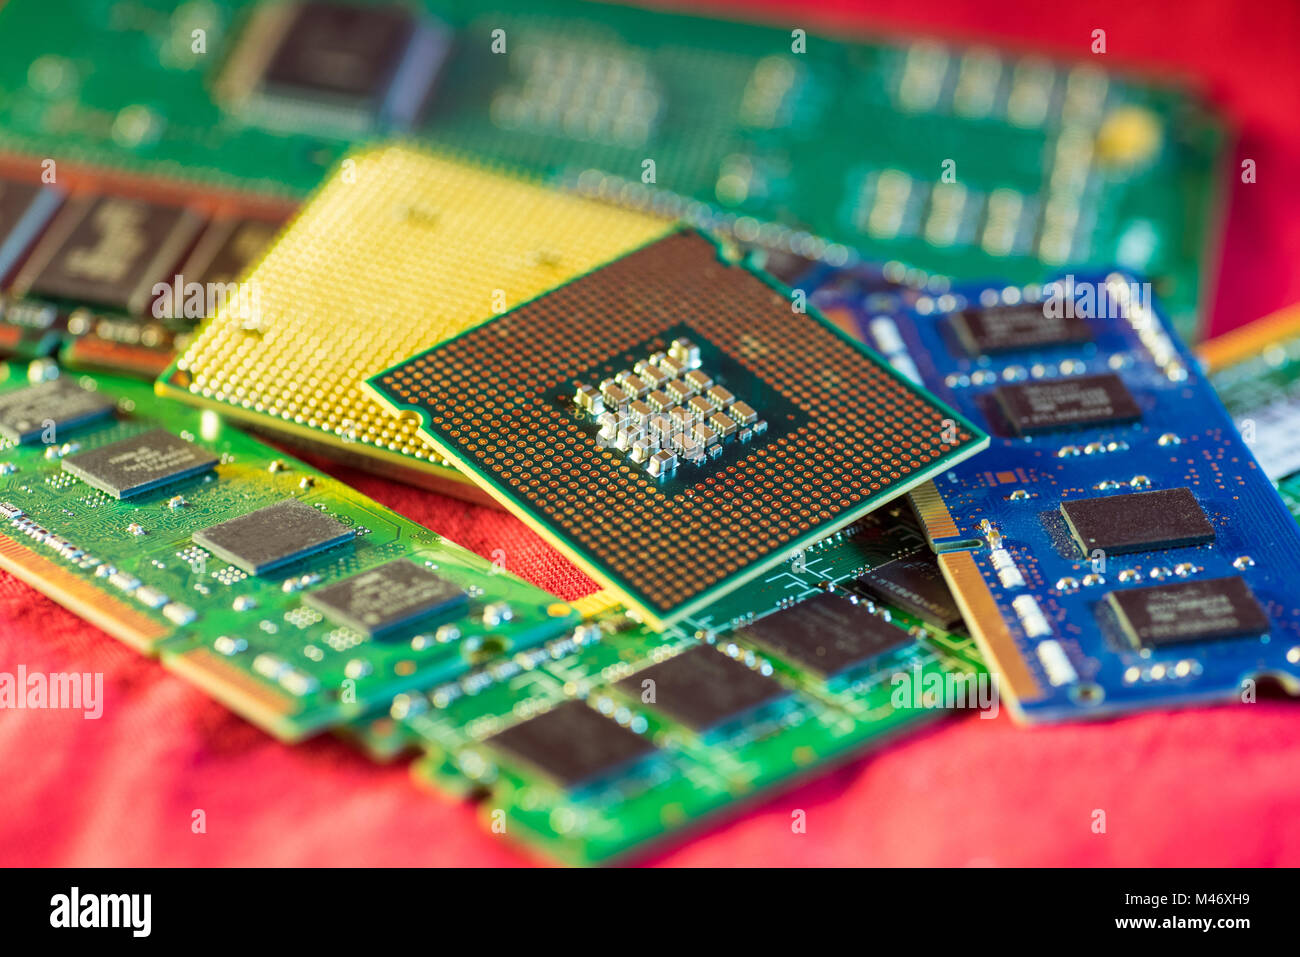 Two different types of CPUs on stacks of memory cards. - Stock Image